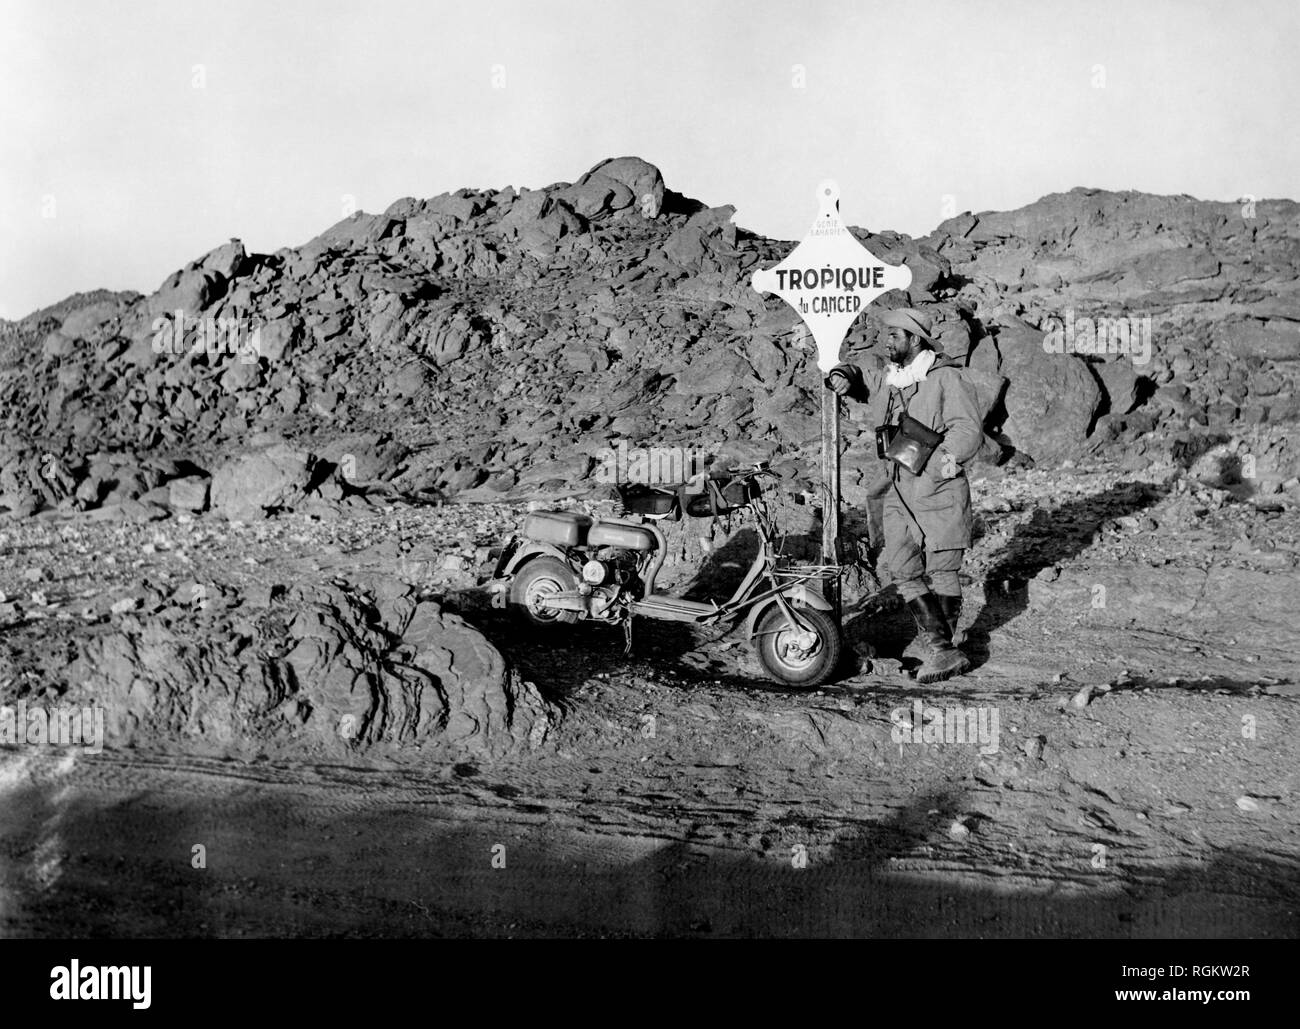 stop at the tropic of cancer, 1953 Stock Photo